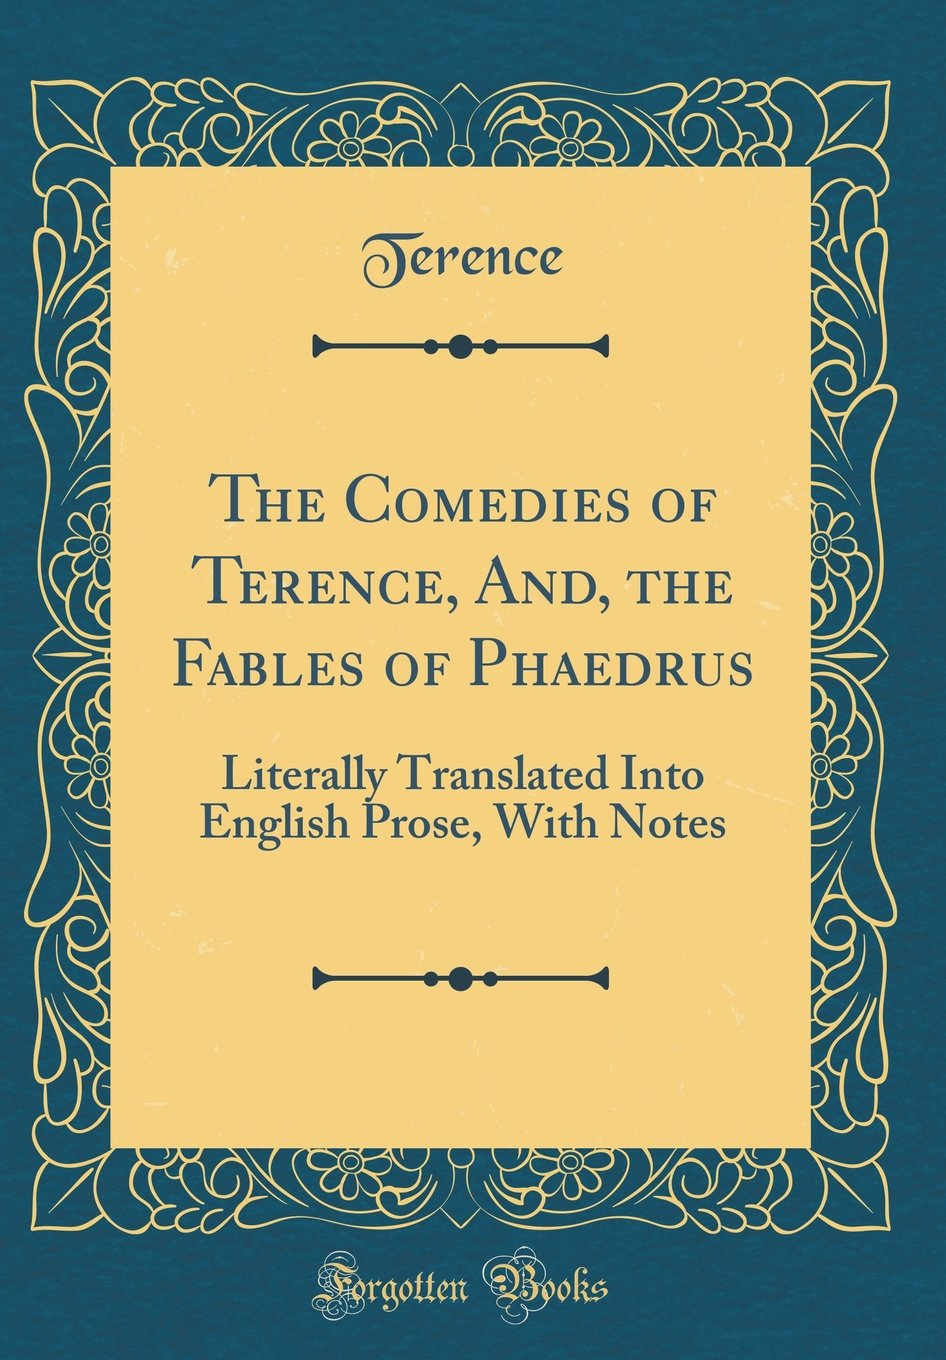 The Comedies of Terence, And, the Fables of Phaedrus: Literally Translated Into English Prose, with Notes (Classic Reprint) ebook